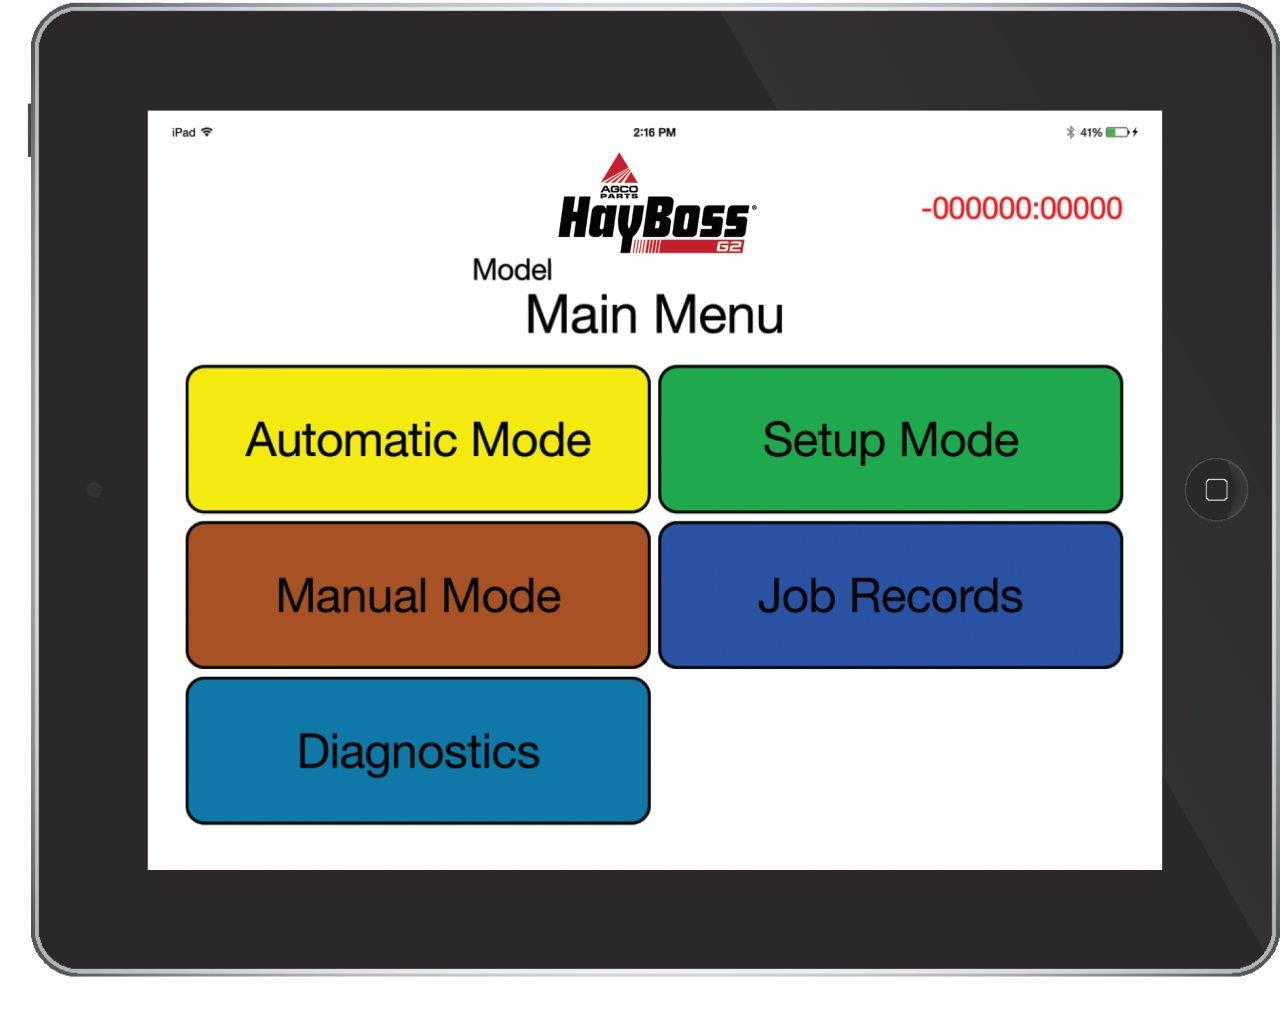 HayBoss IPad